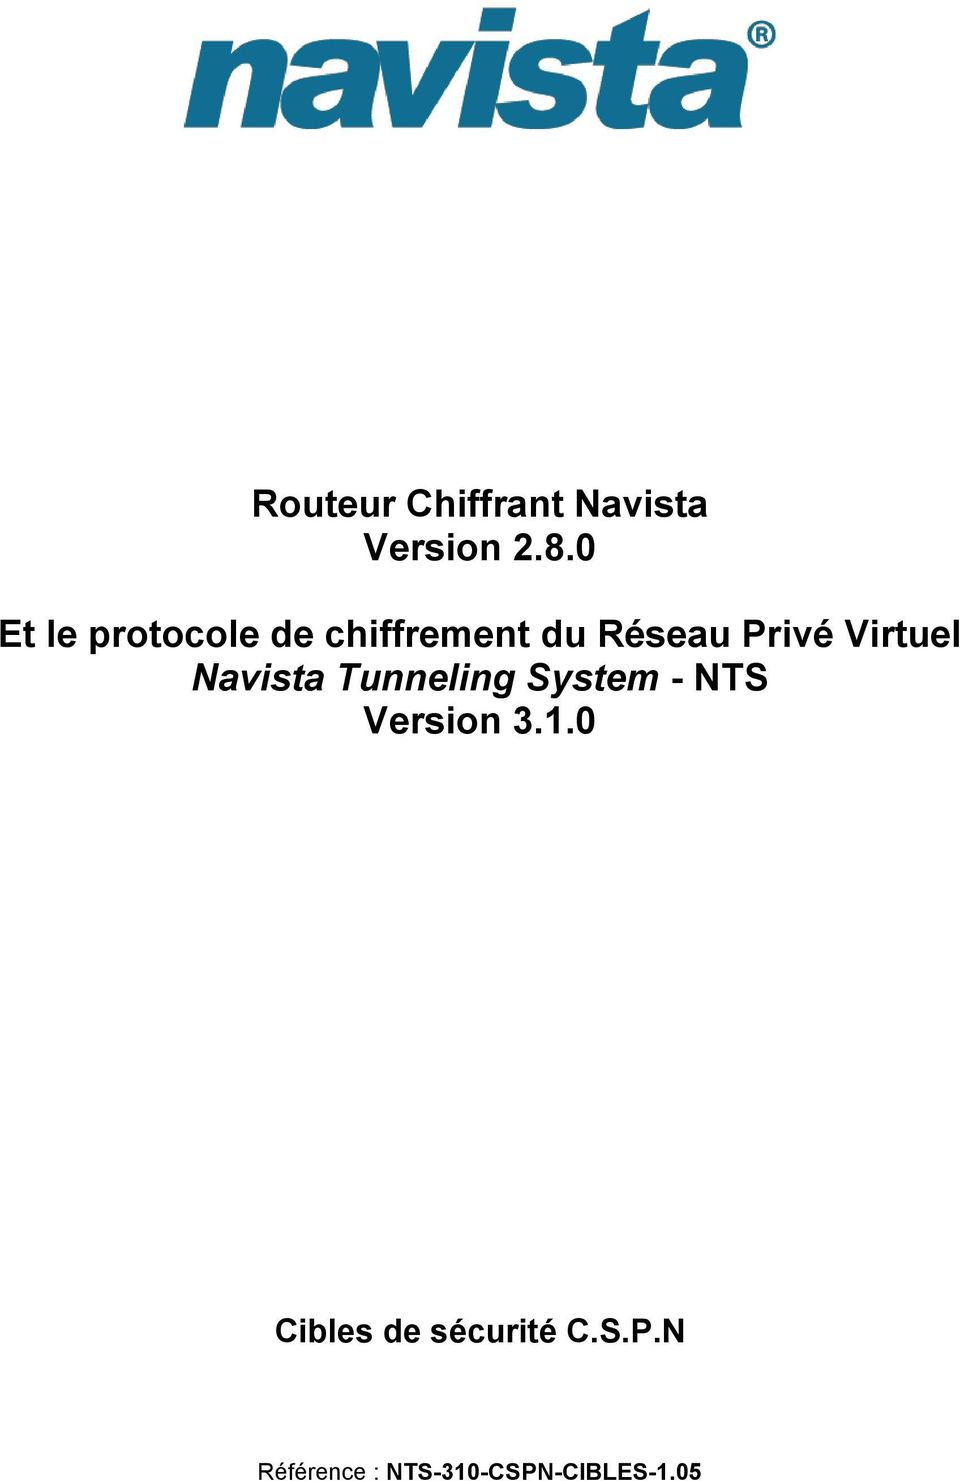 Virtuel Navista Tunneling System - NTS Version 3.1.